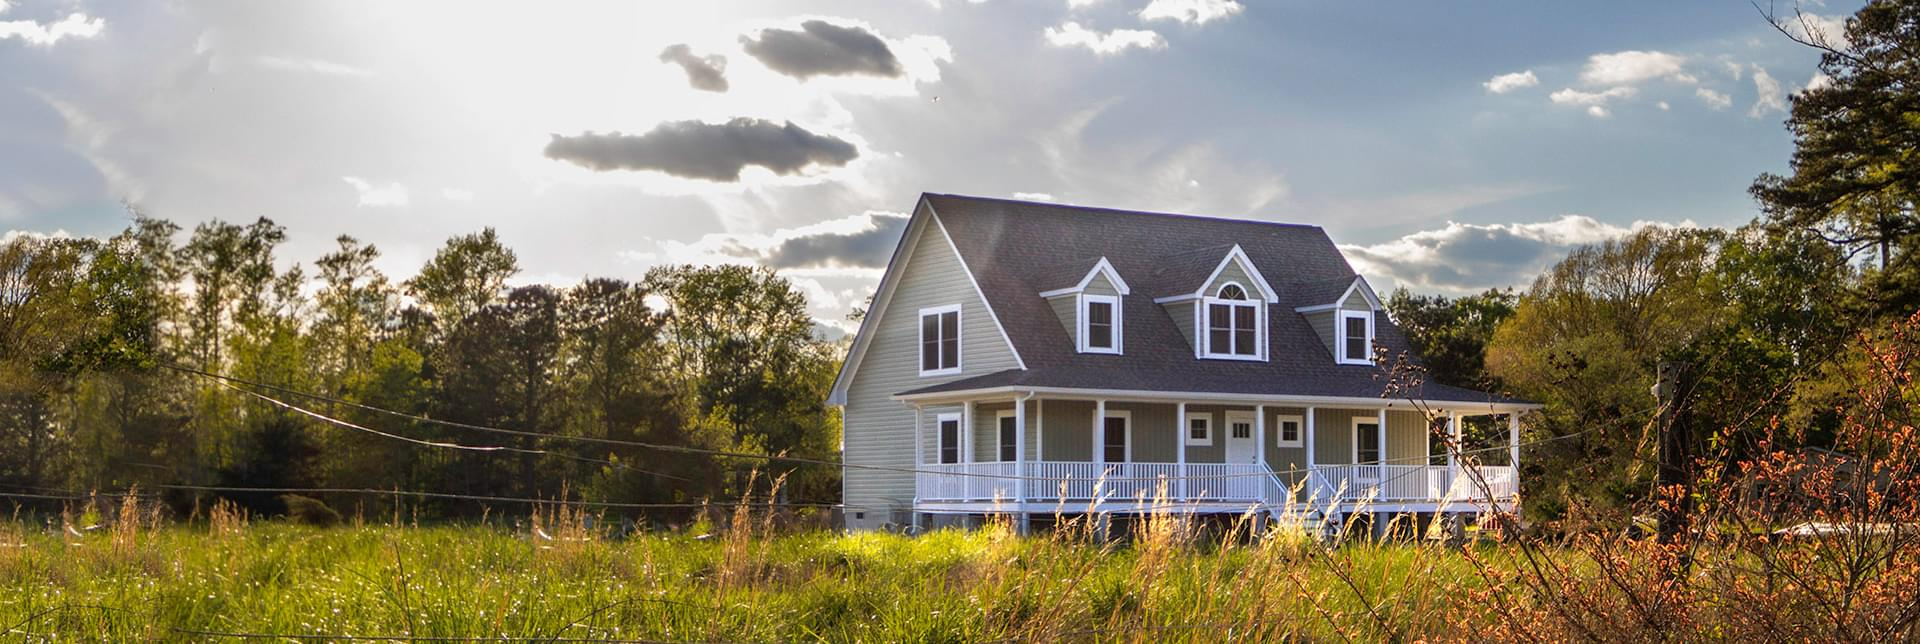 New Homes in Amherst County VA